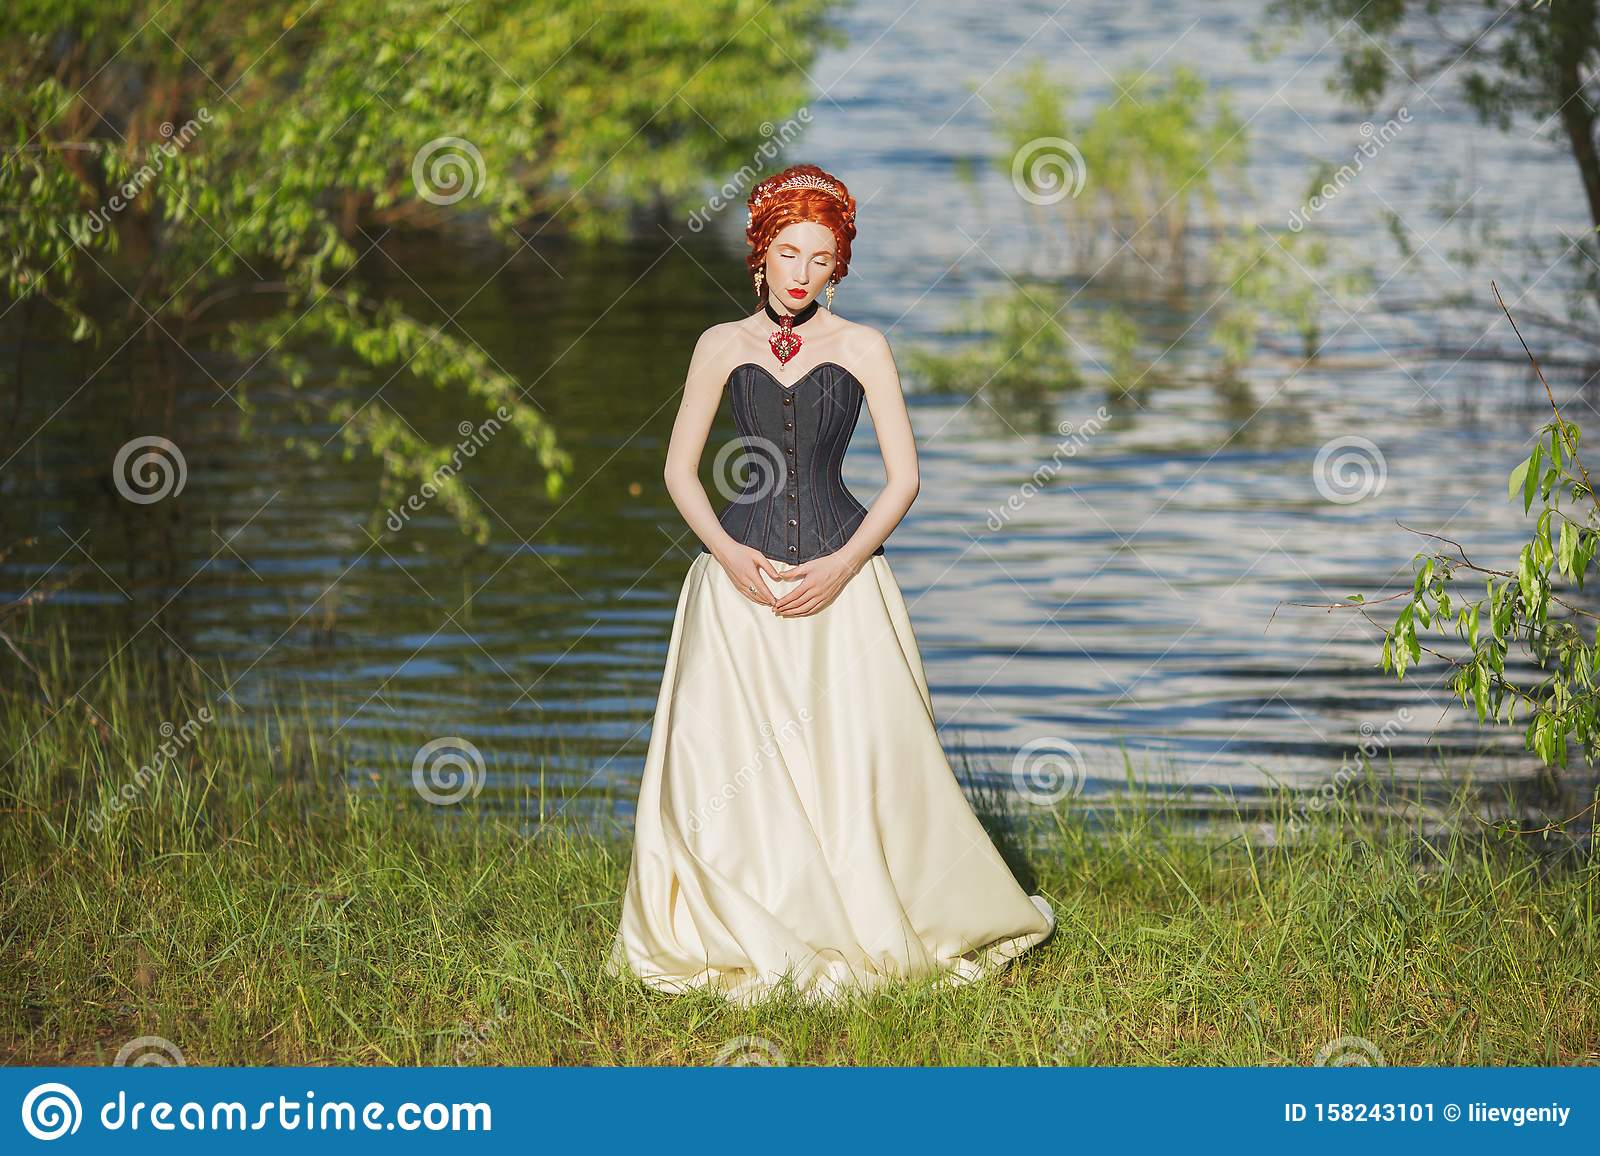 Young victorian princess with hairstyle on nature background. Rococo queen in white historic dress against backdrop of blue water